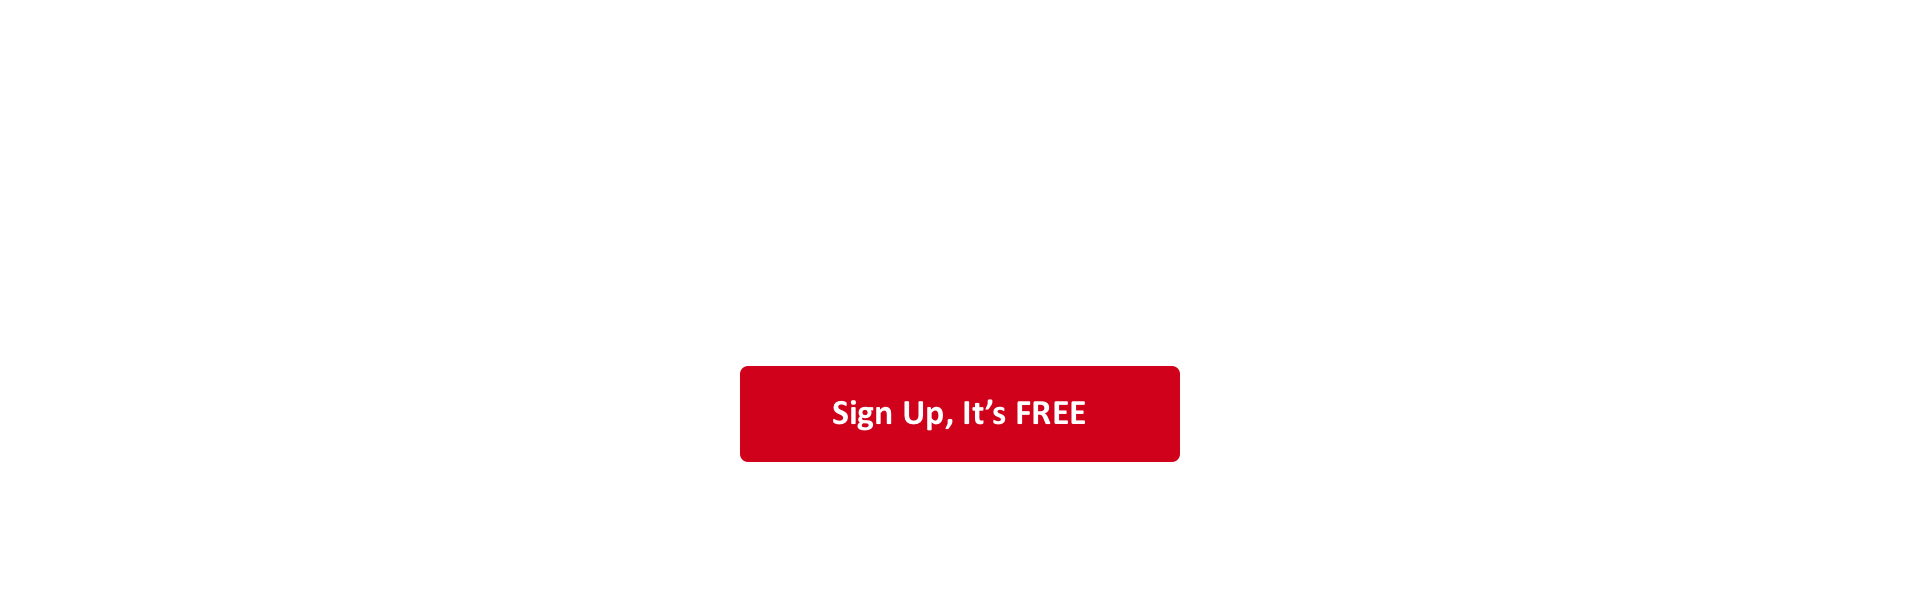 Join Ecommerce Strategy China